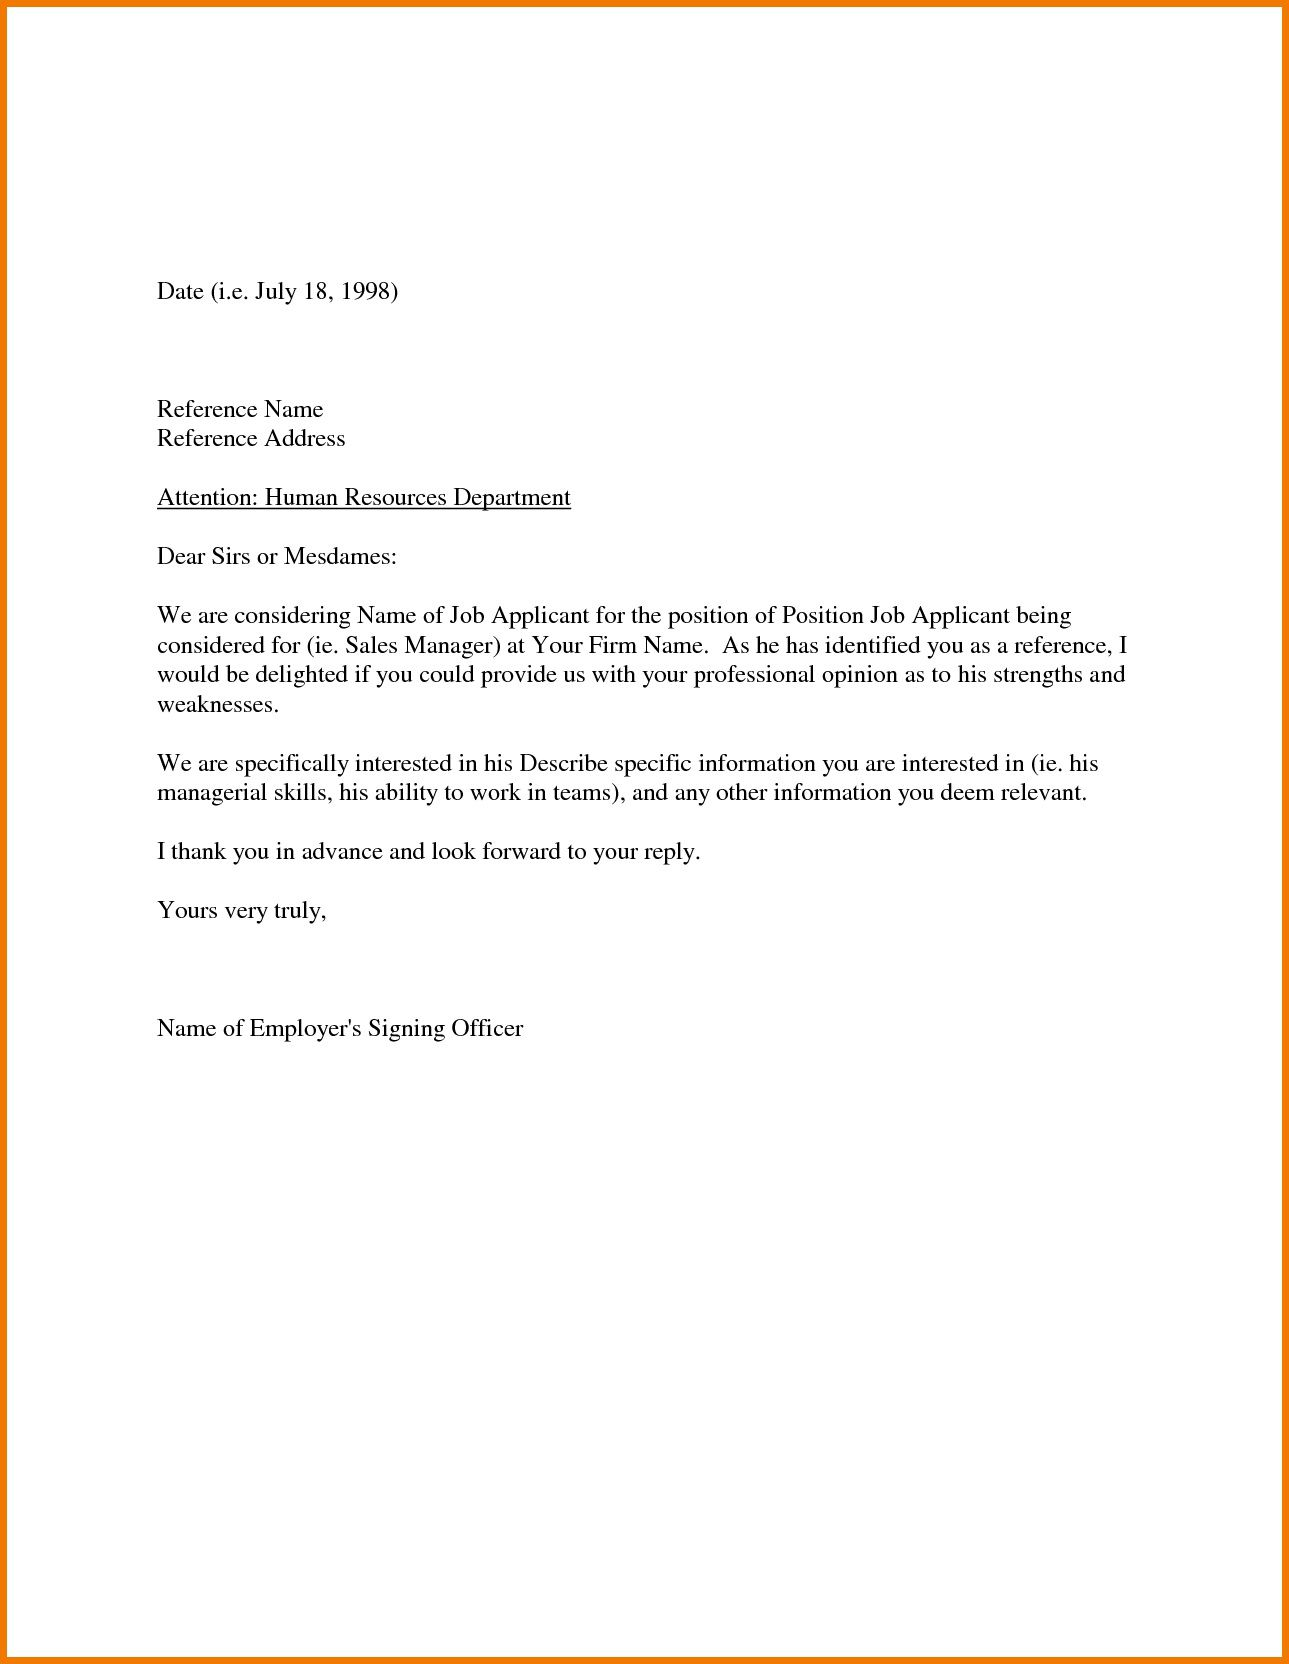 003 Awful Free Reference Letter Template High Definition  Personal Character For Employee EmploymentFull